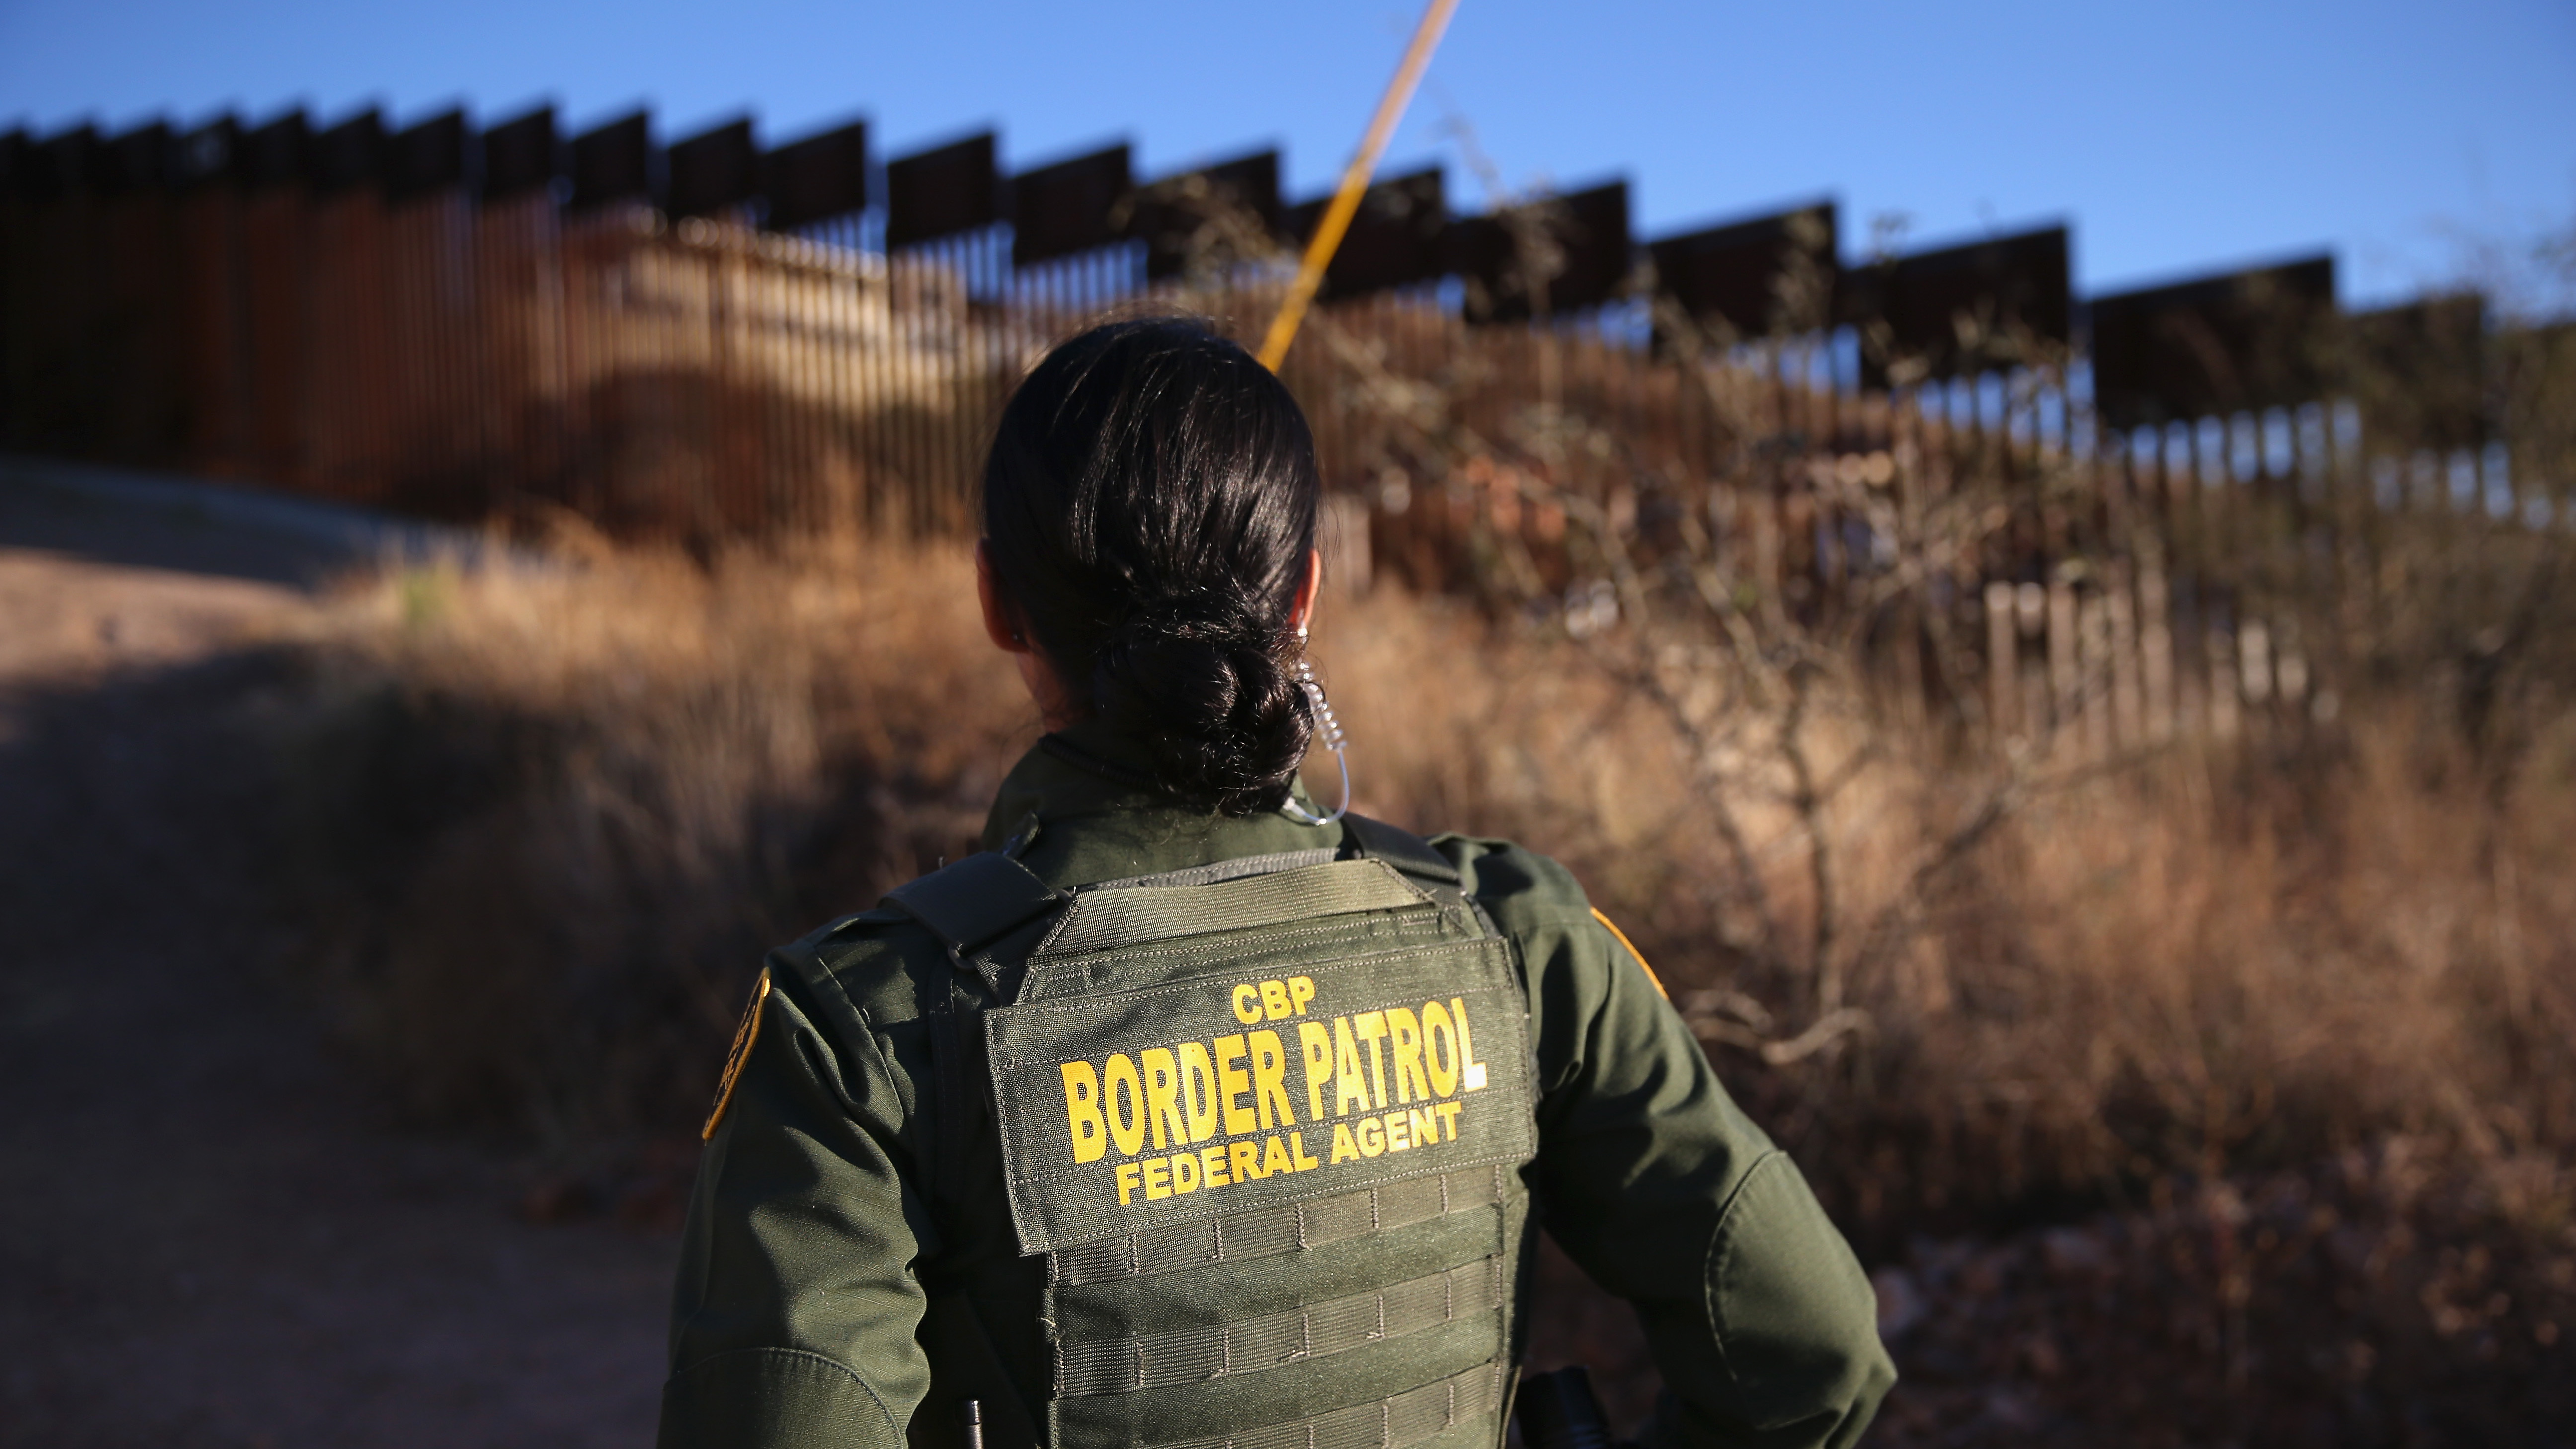 Border Patrol Faces Backlash From Aid Groups Over Migrant Deaths